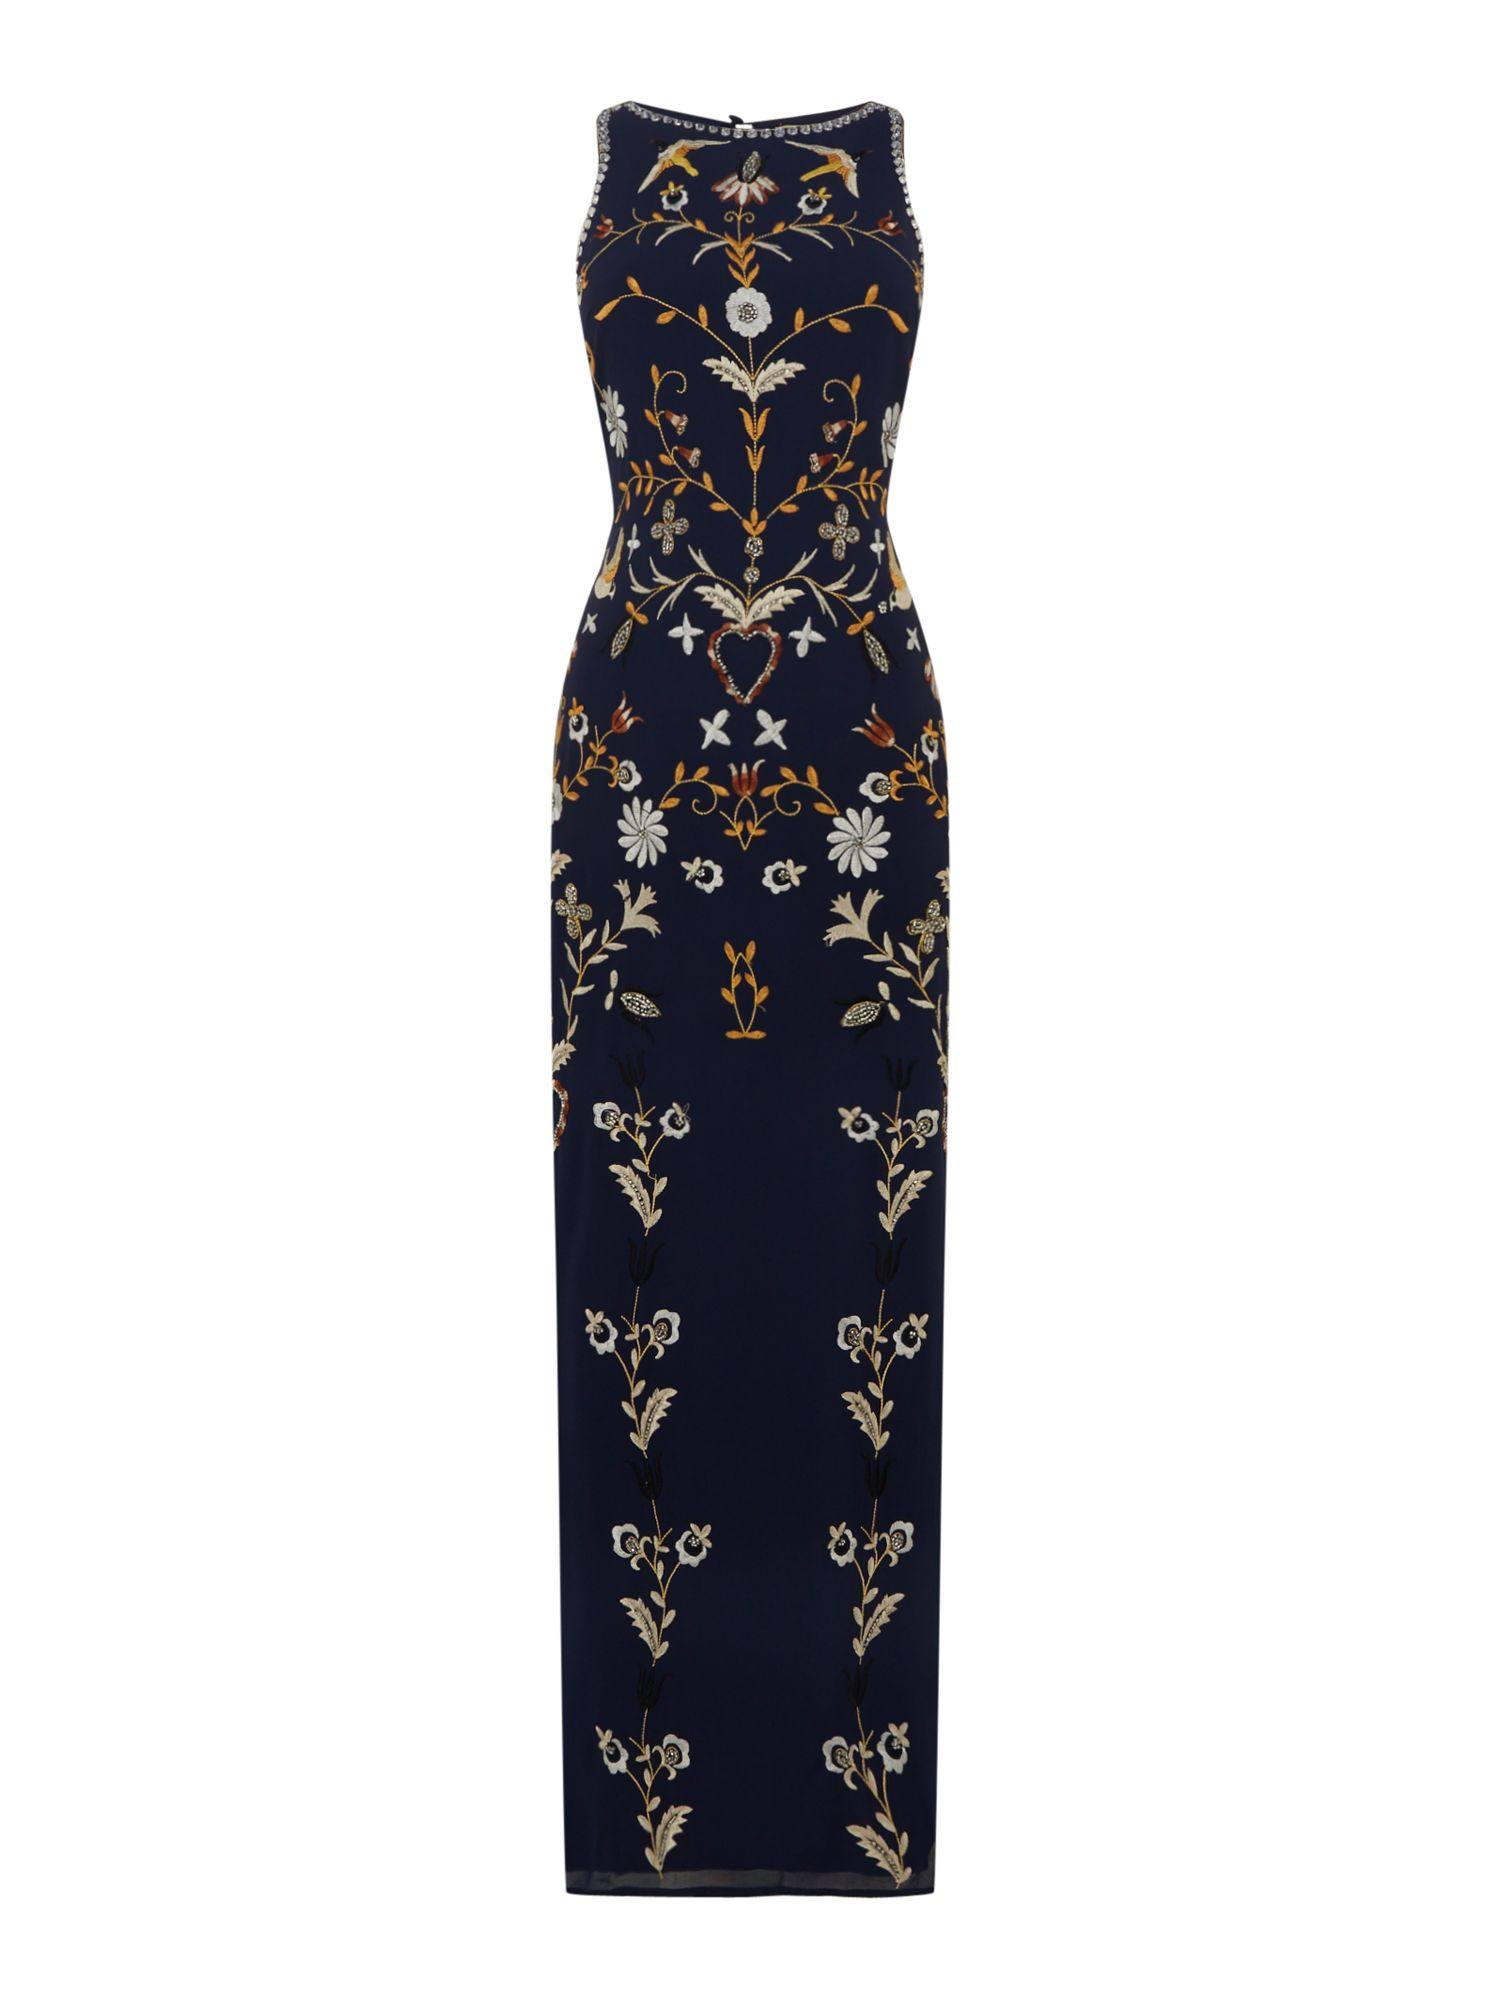 1920s Downton Abbey Dresses Frock and Frill Short sleeved embellished gown Navy £124.00 AT vintagedancer.com